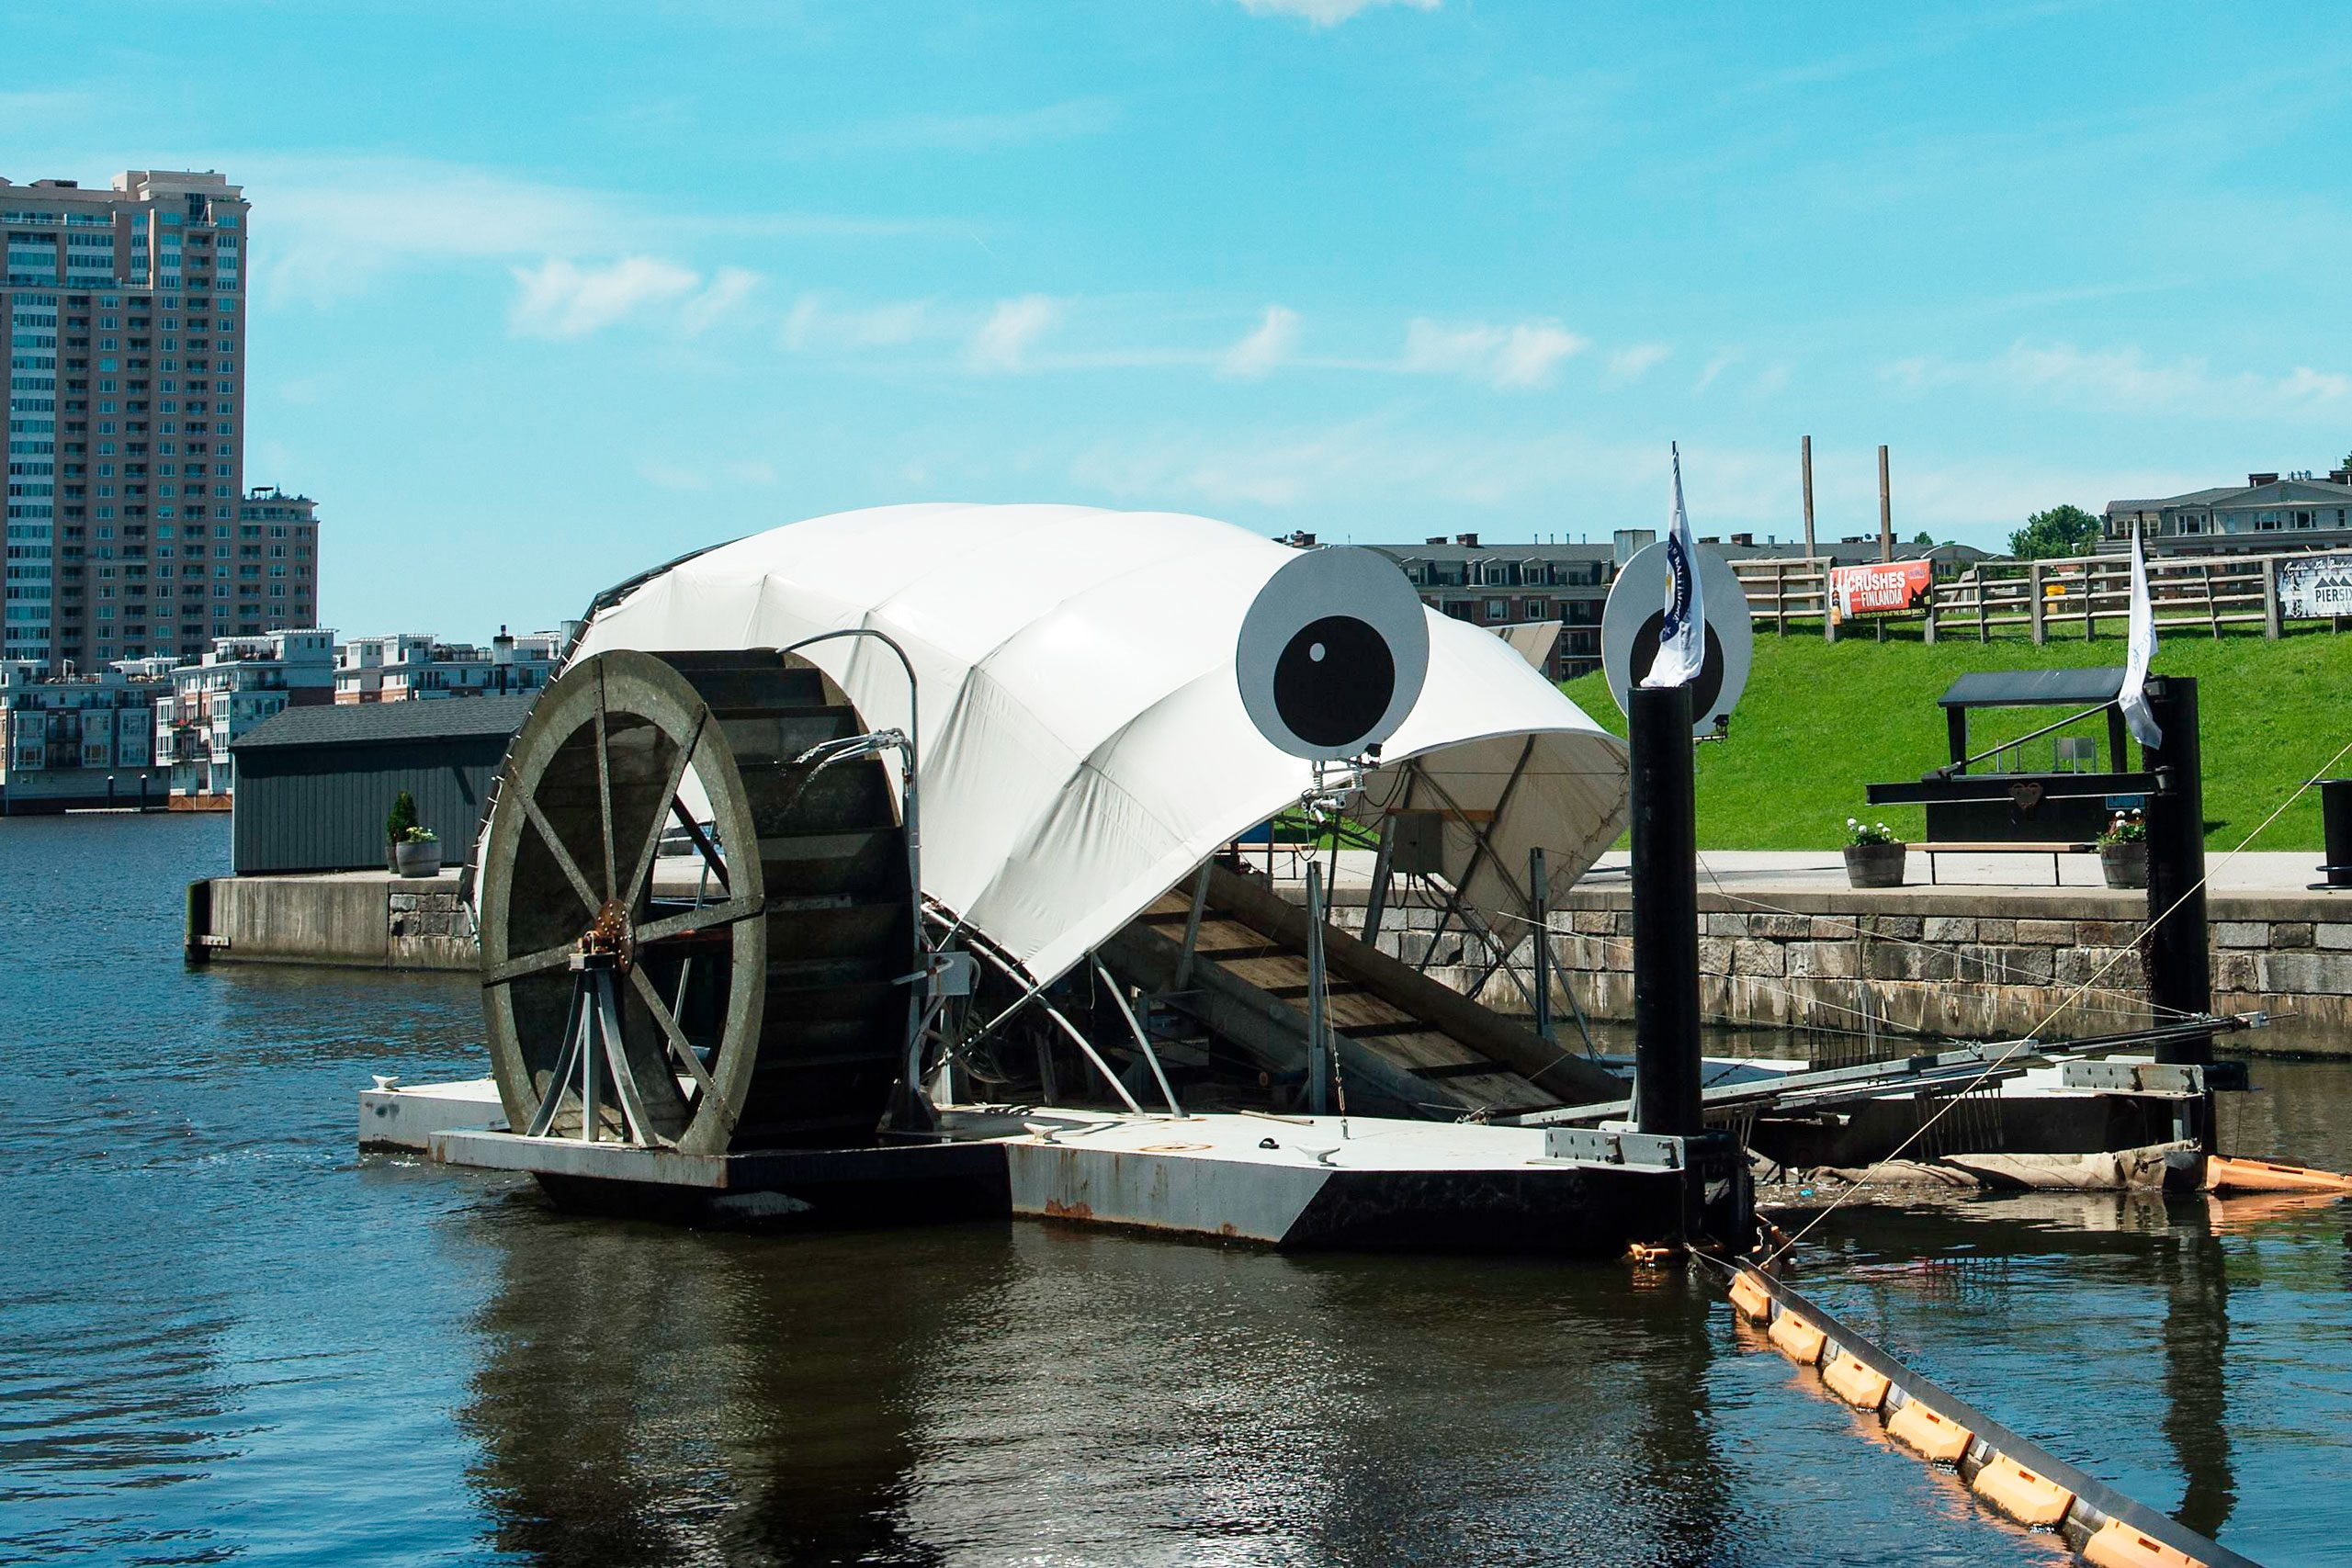 View of the Inner Harbor Water Wheel, also known as Mr. Trash Wheel, in Baltimore, Maryland